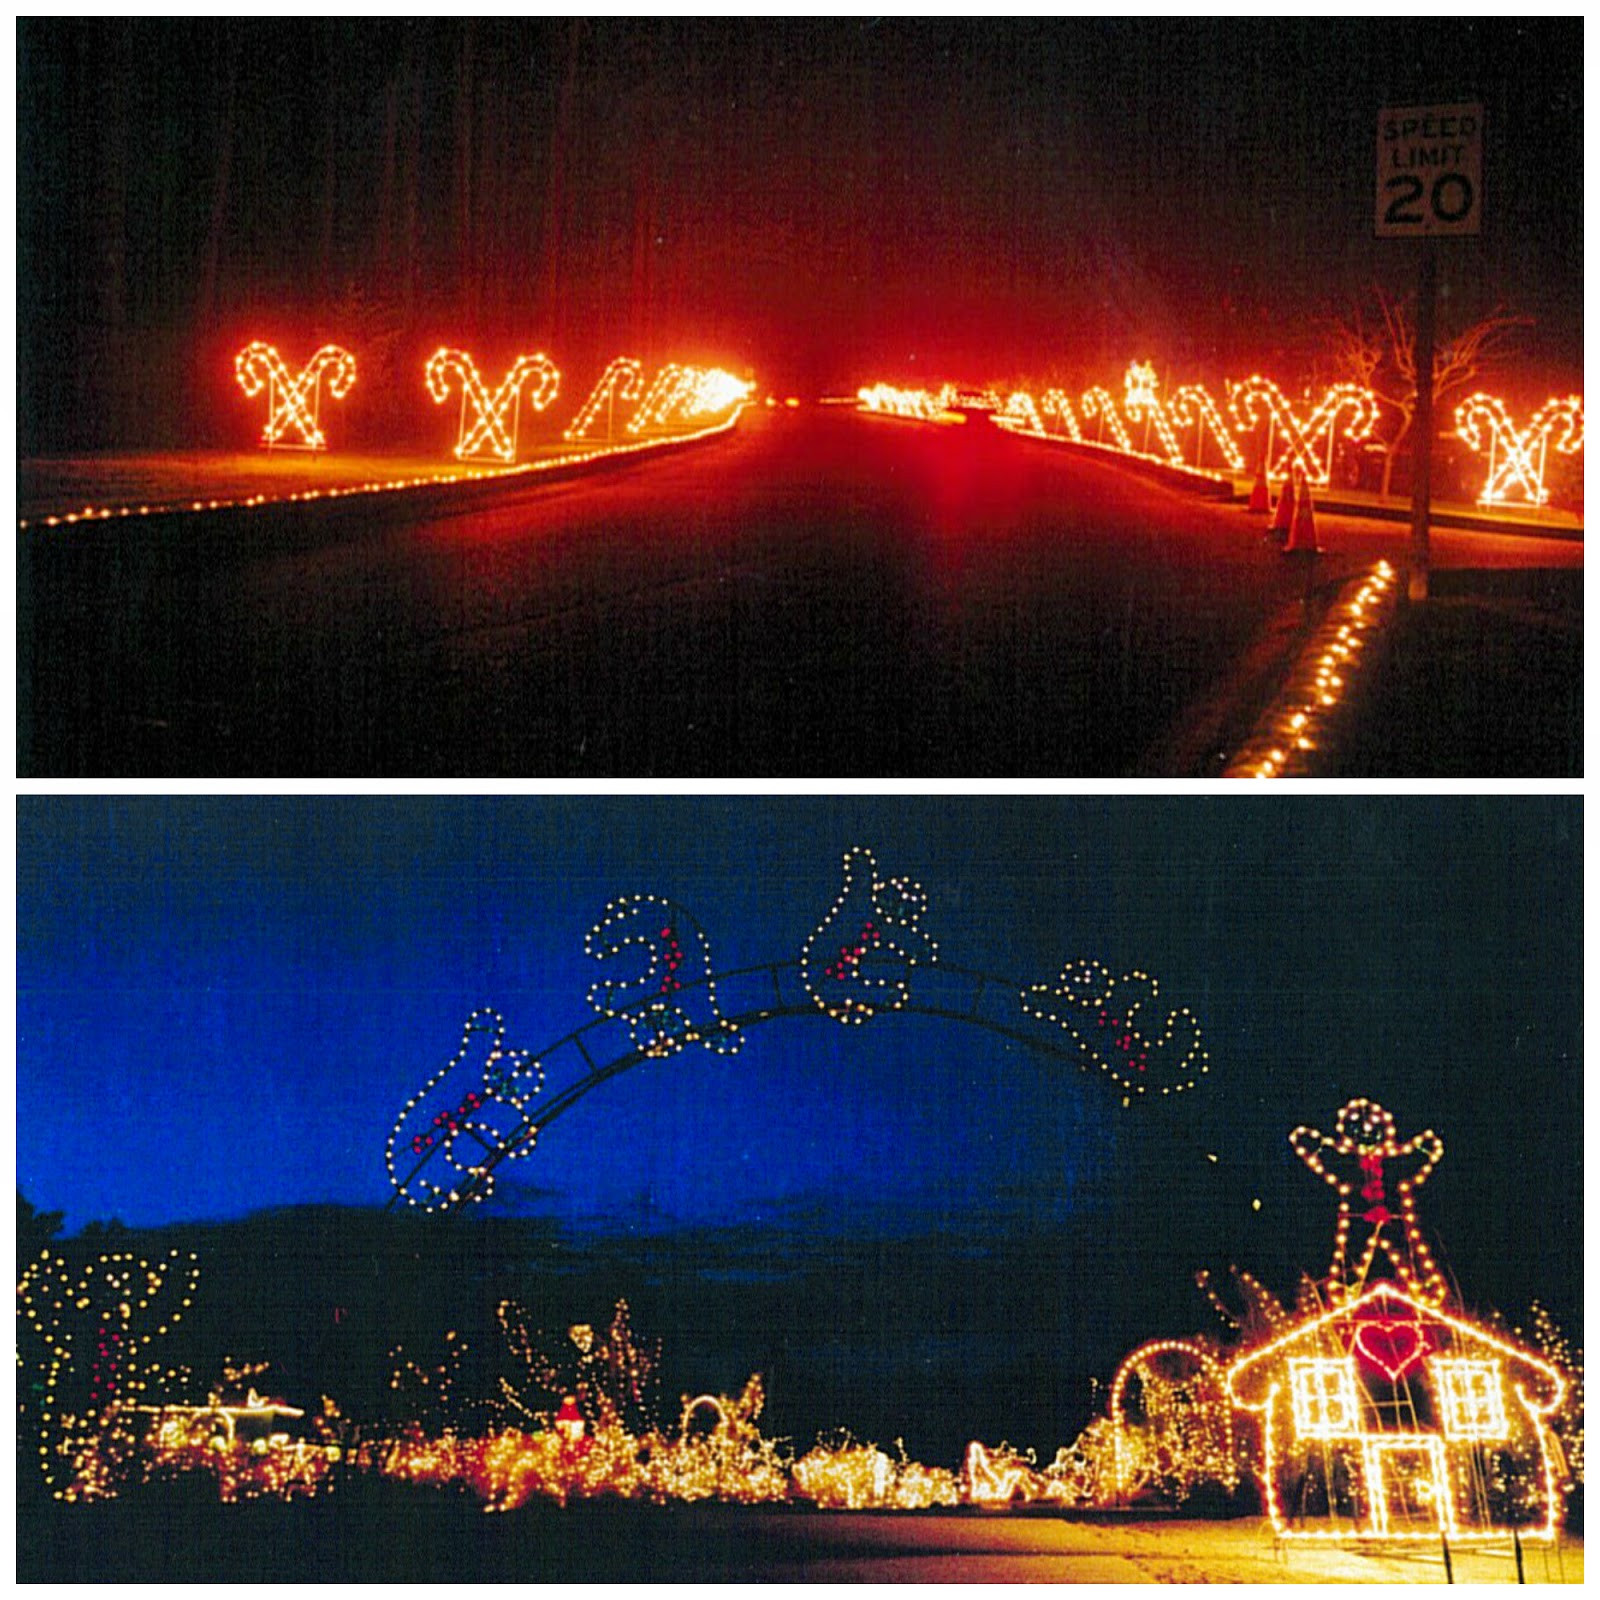 The ever-popular Candy Cane Lane and a gingerbread house were a few of Bates' first contributions to Fantasy Lights.